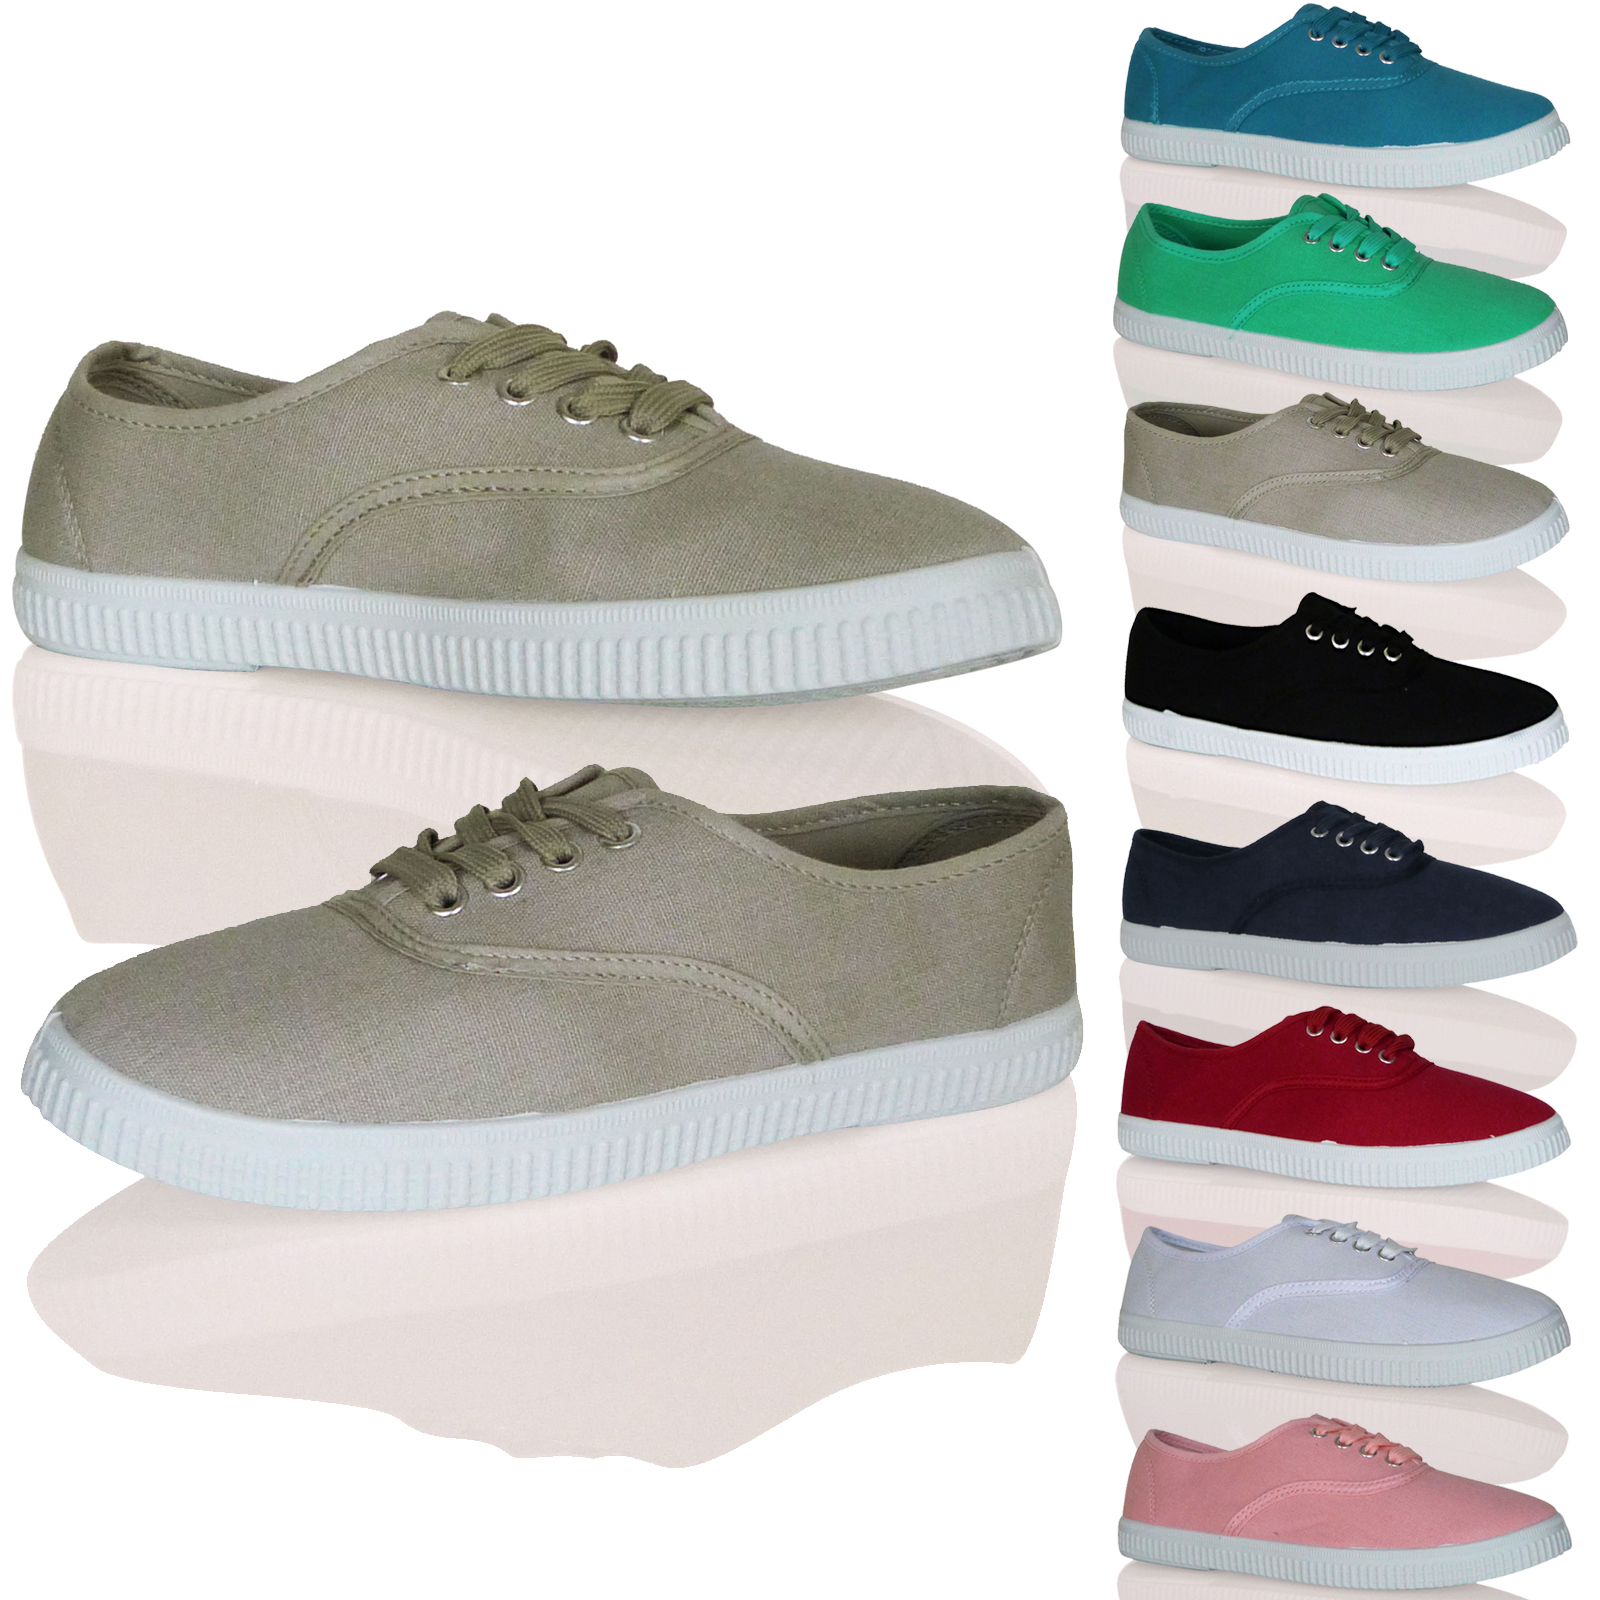 WOMENS LADIES TRAINERS SNEAKERS CLASSIC PUMPS LACE UP PLIMSOLES CANVAS NEW SIZE